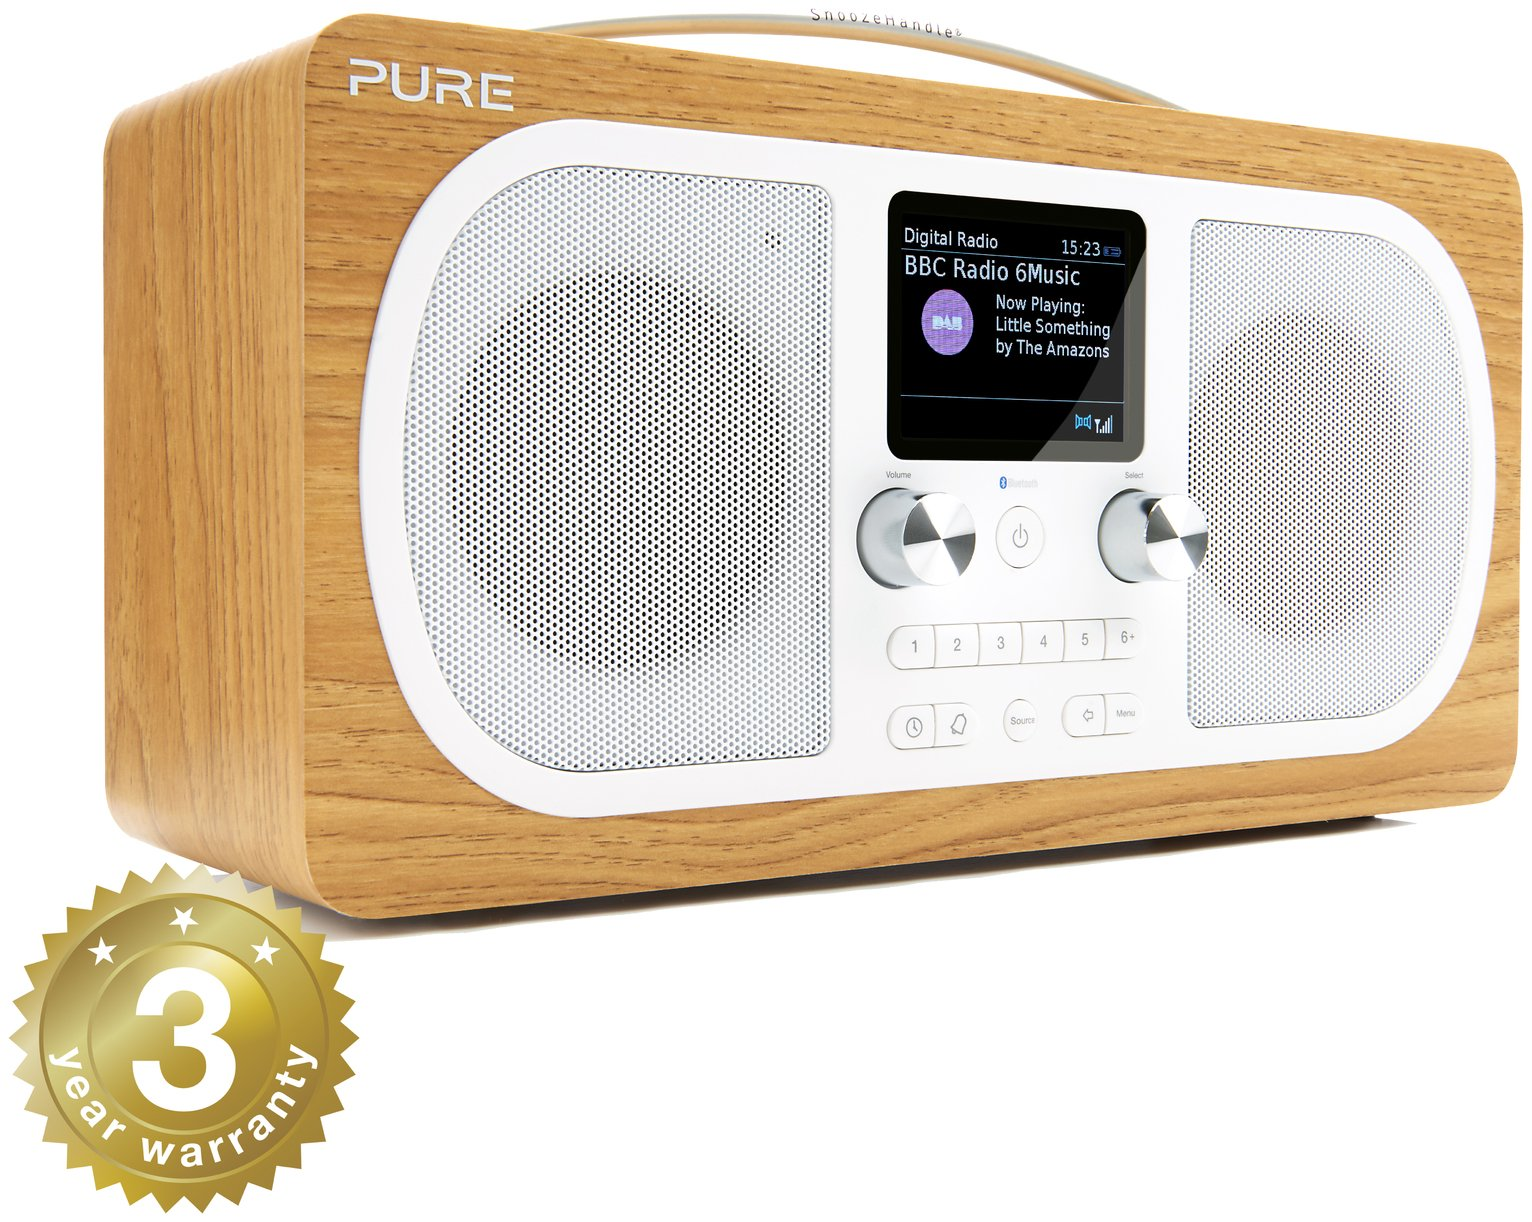 pure evoke h6 dab radio 7432781 argos price tracker. Black Bedroom Furniture Sets. Home Design Ideas